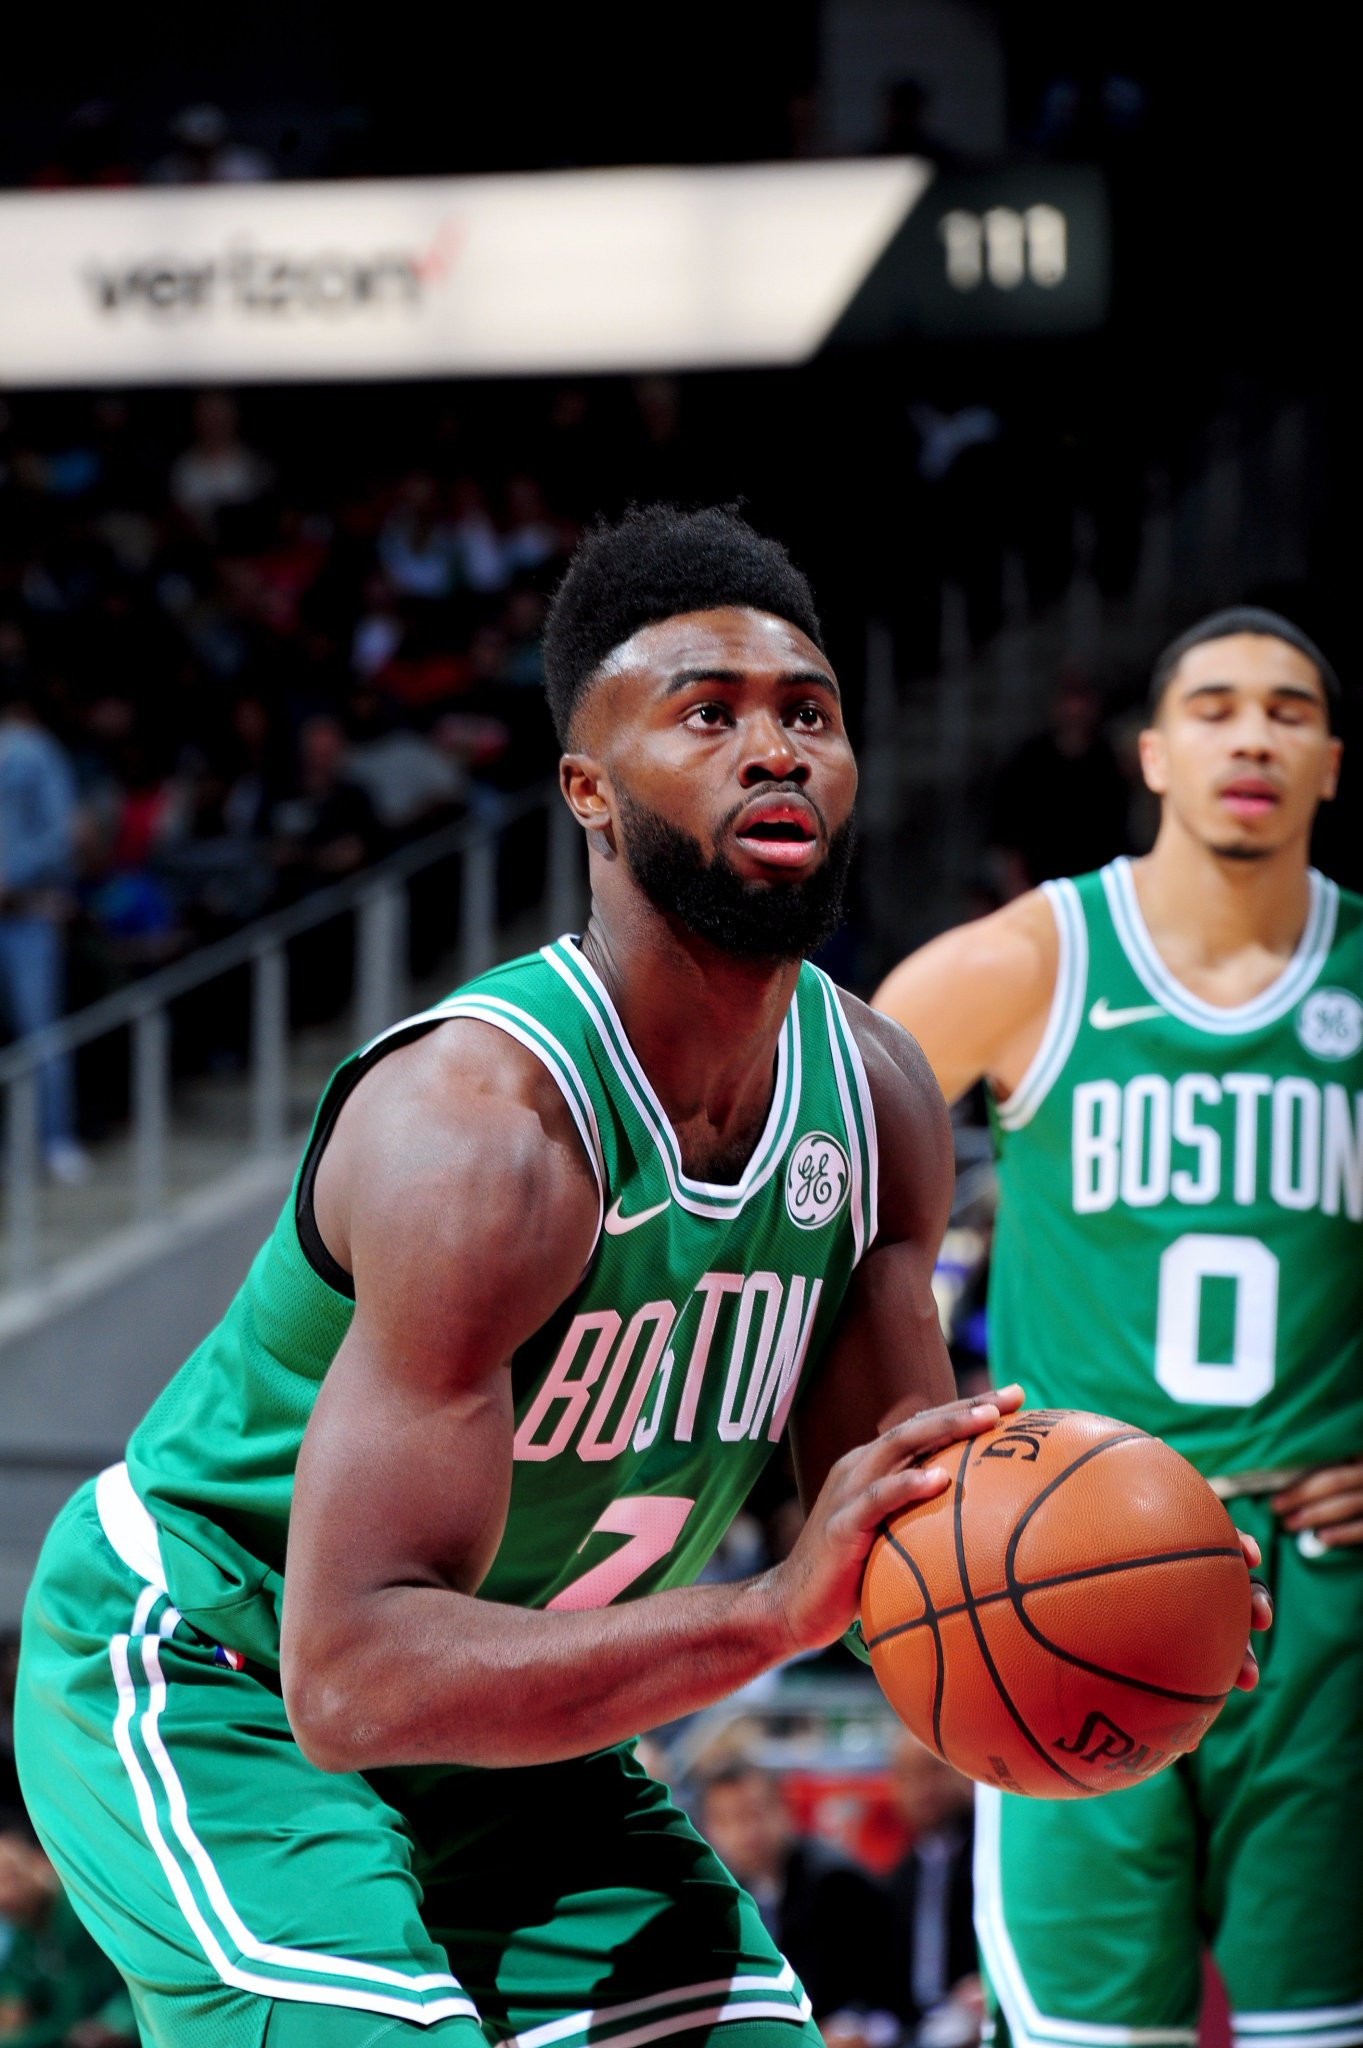 For the @celtics 15th straight win, Jaylen Brown poured in a career-high 27 PTS... on 77% from the field! #Celtics https://t.co/0iX5WJ6BWh